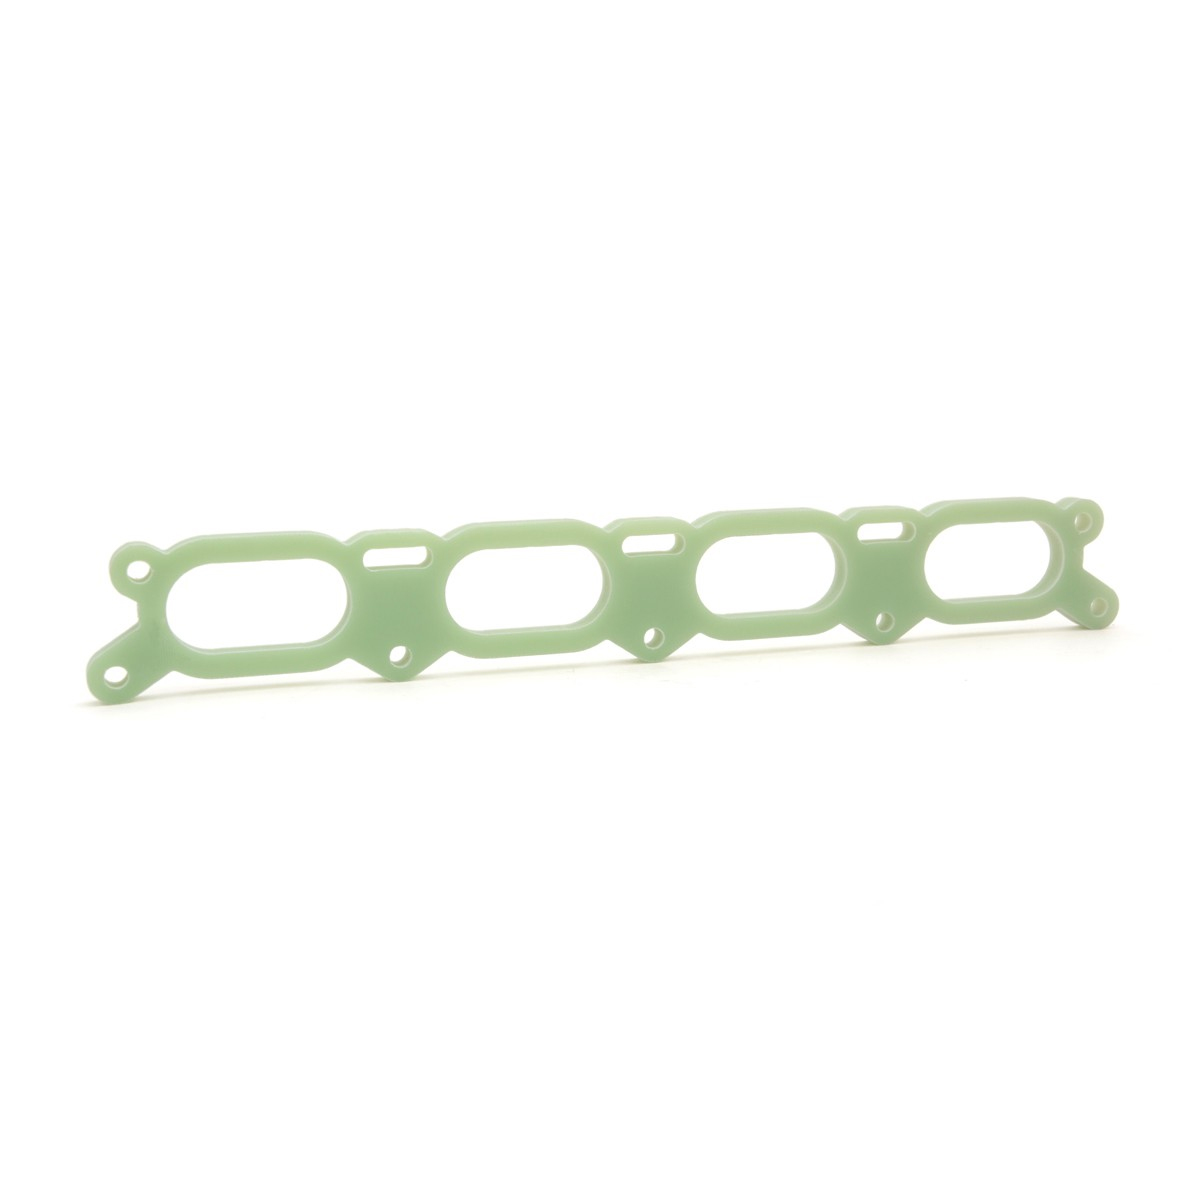 034 Motorsport Intake Manifold Spacer, 1.8T, Phenolic Large Port - 034-108-9000-LP